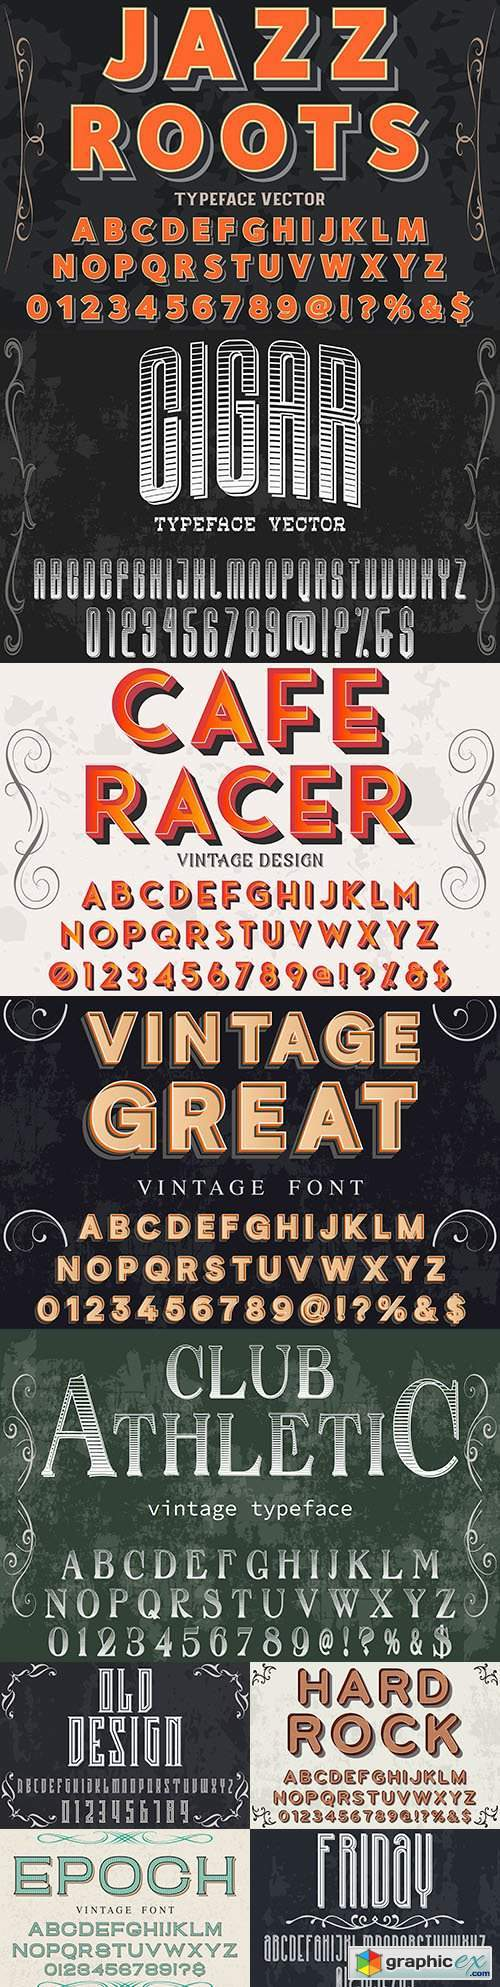 Vintage font effect text with alphabet illustration design